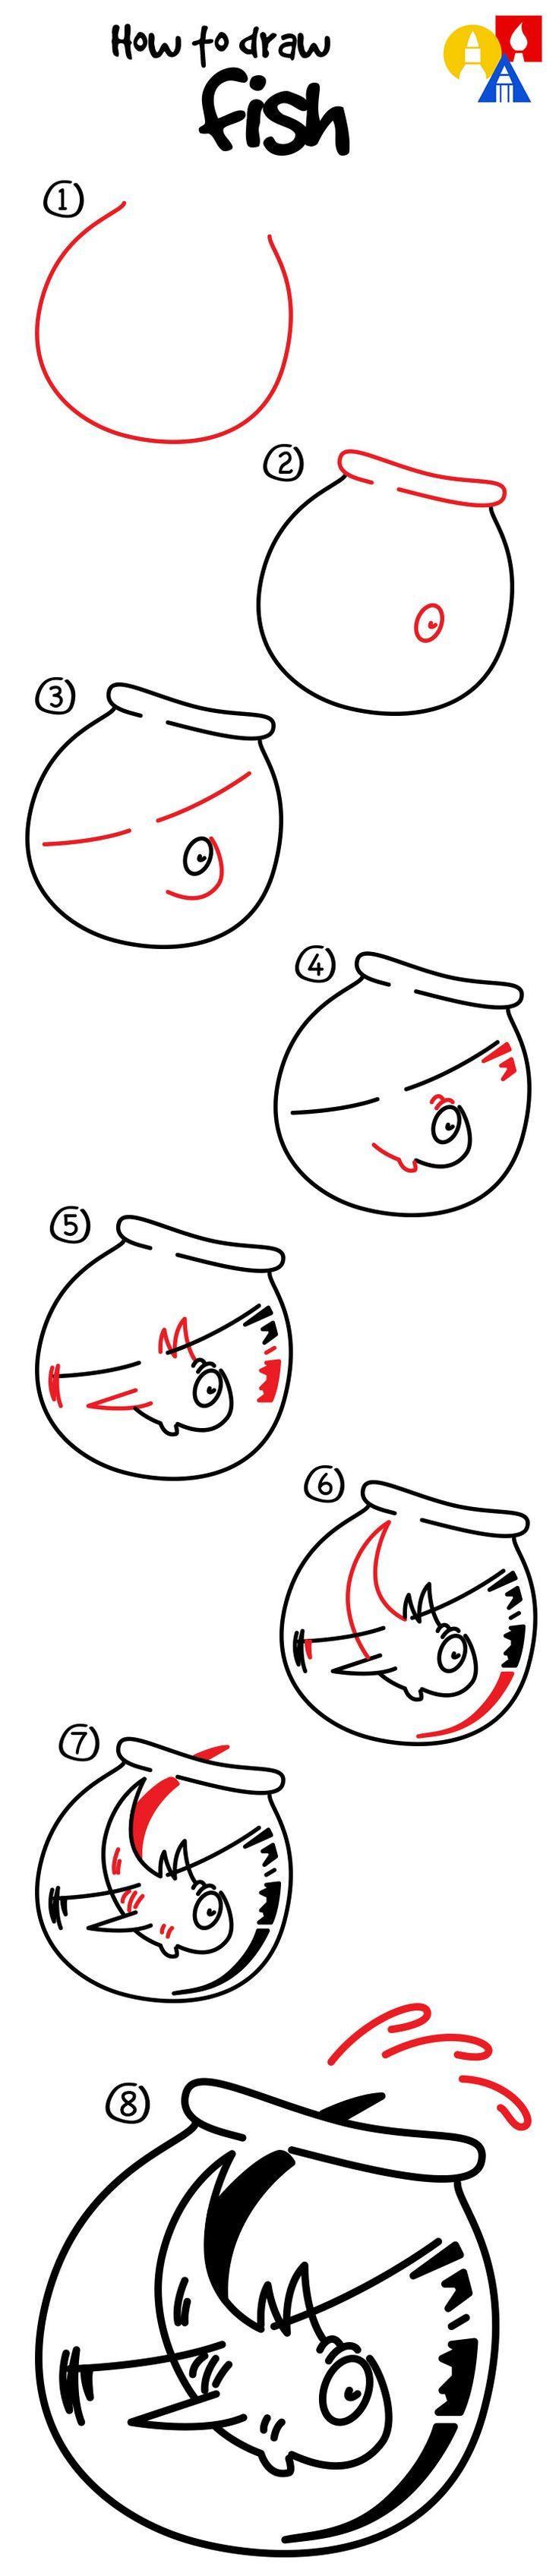 How To Draw Fish From The Cat In The Hat Art For Kids Hub Art For Kids Hub Dr Seuss Art Seuss Crafts